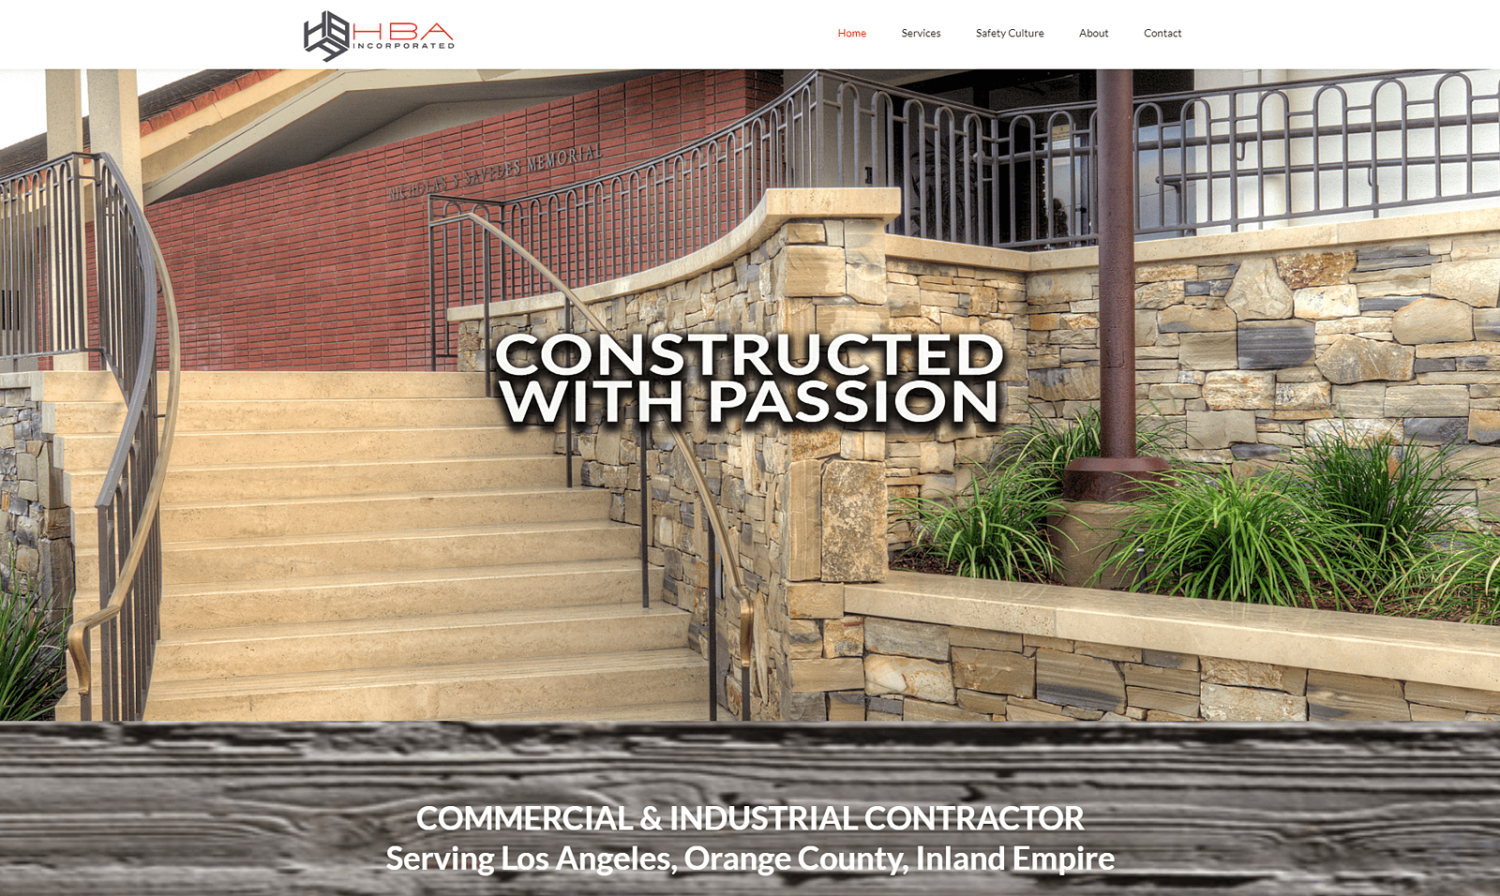 HBA Incorporated Website